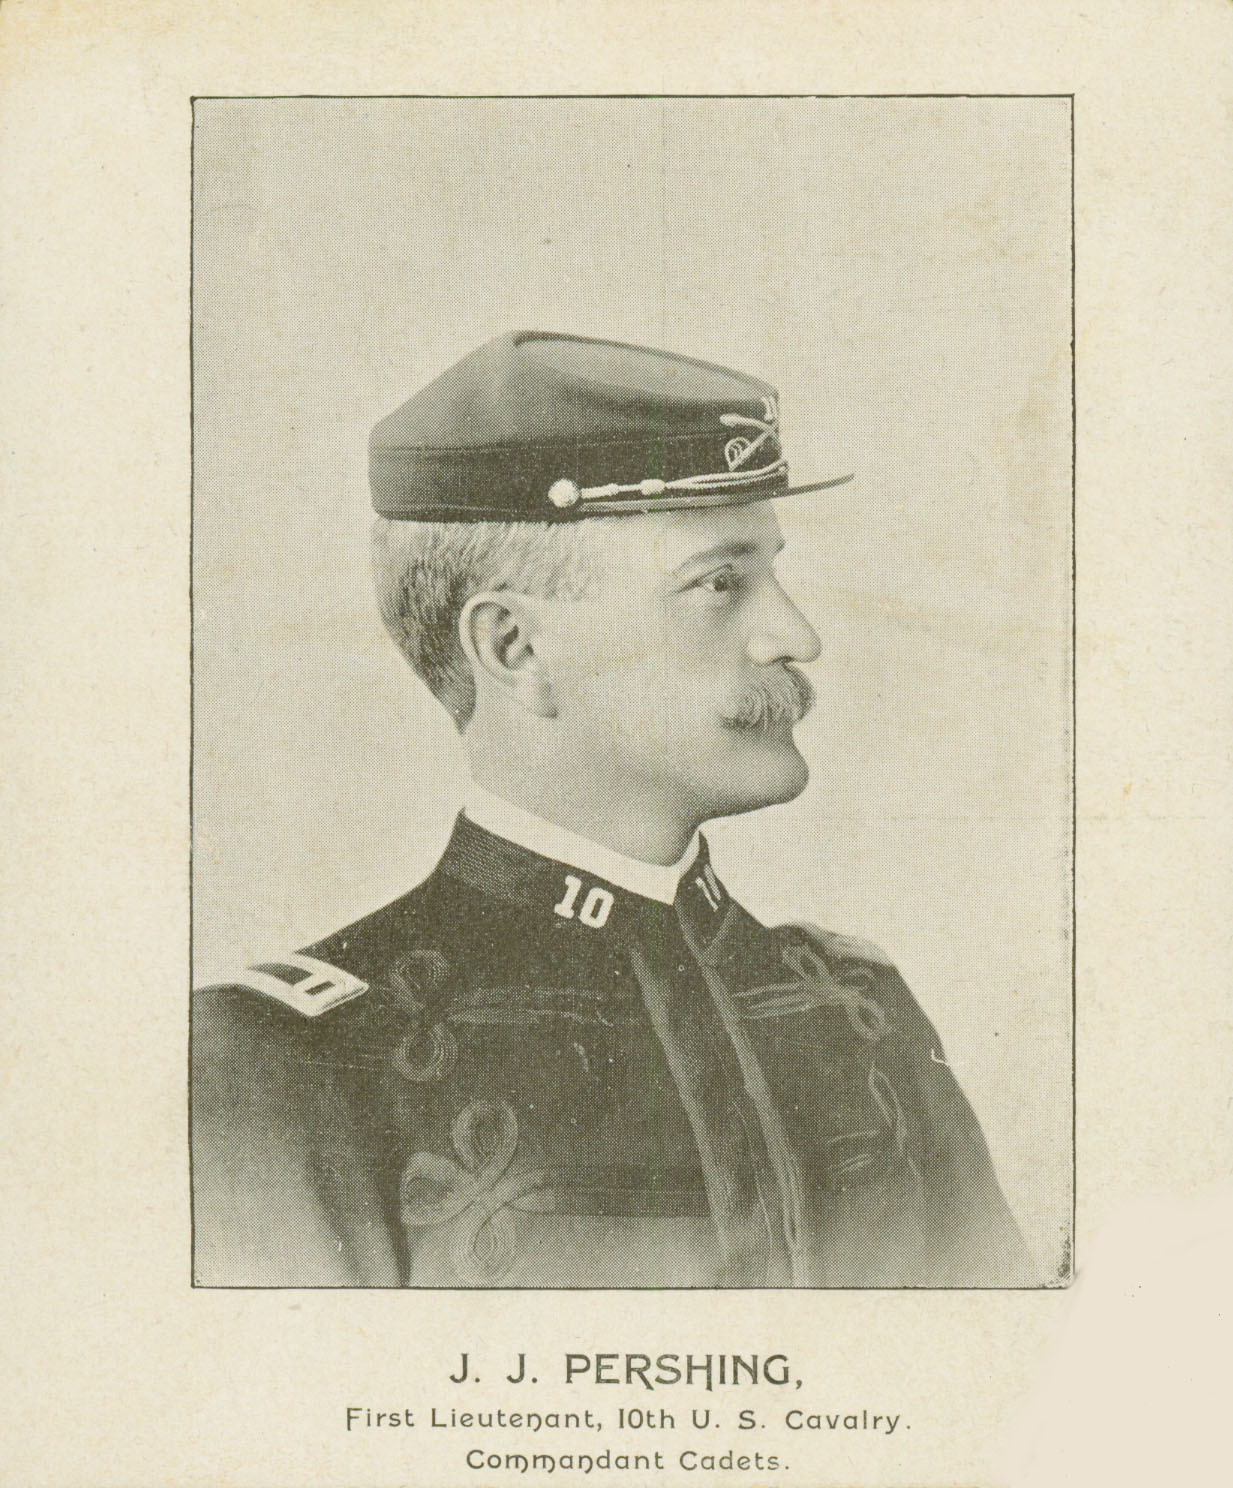 J. J. Pershing, First Lieutenant, 10th Cavalry.